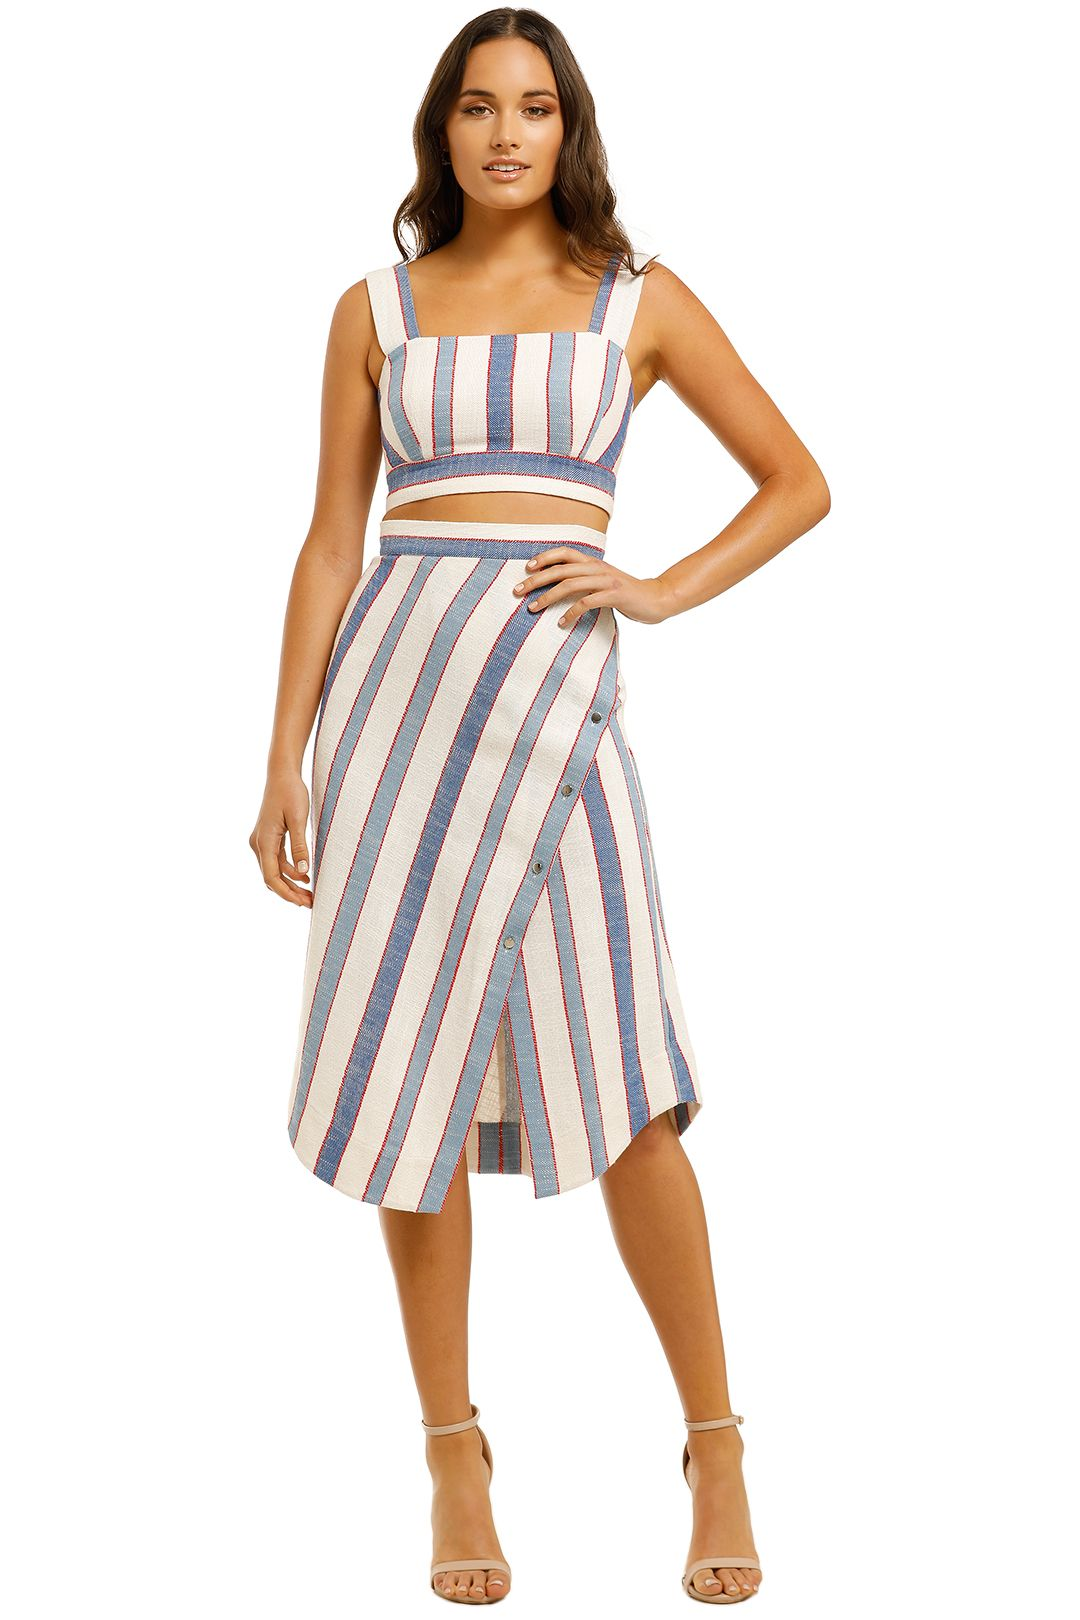 Lover-Marrakech-Crop-Top-and-Skirt-Set-Blue-Ivory-Front